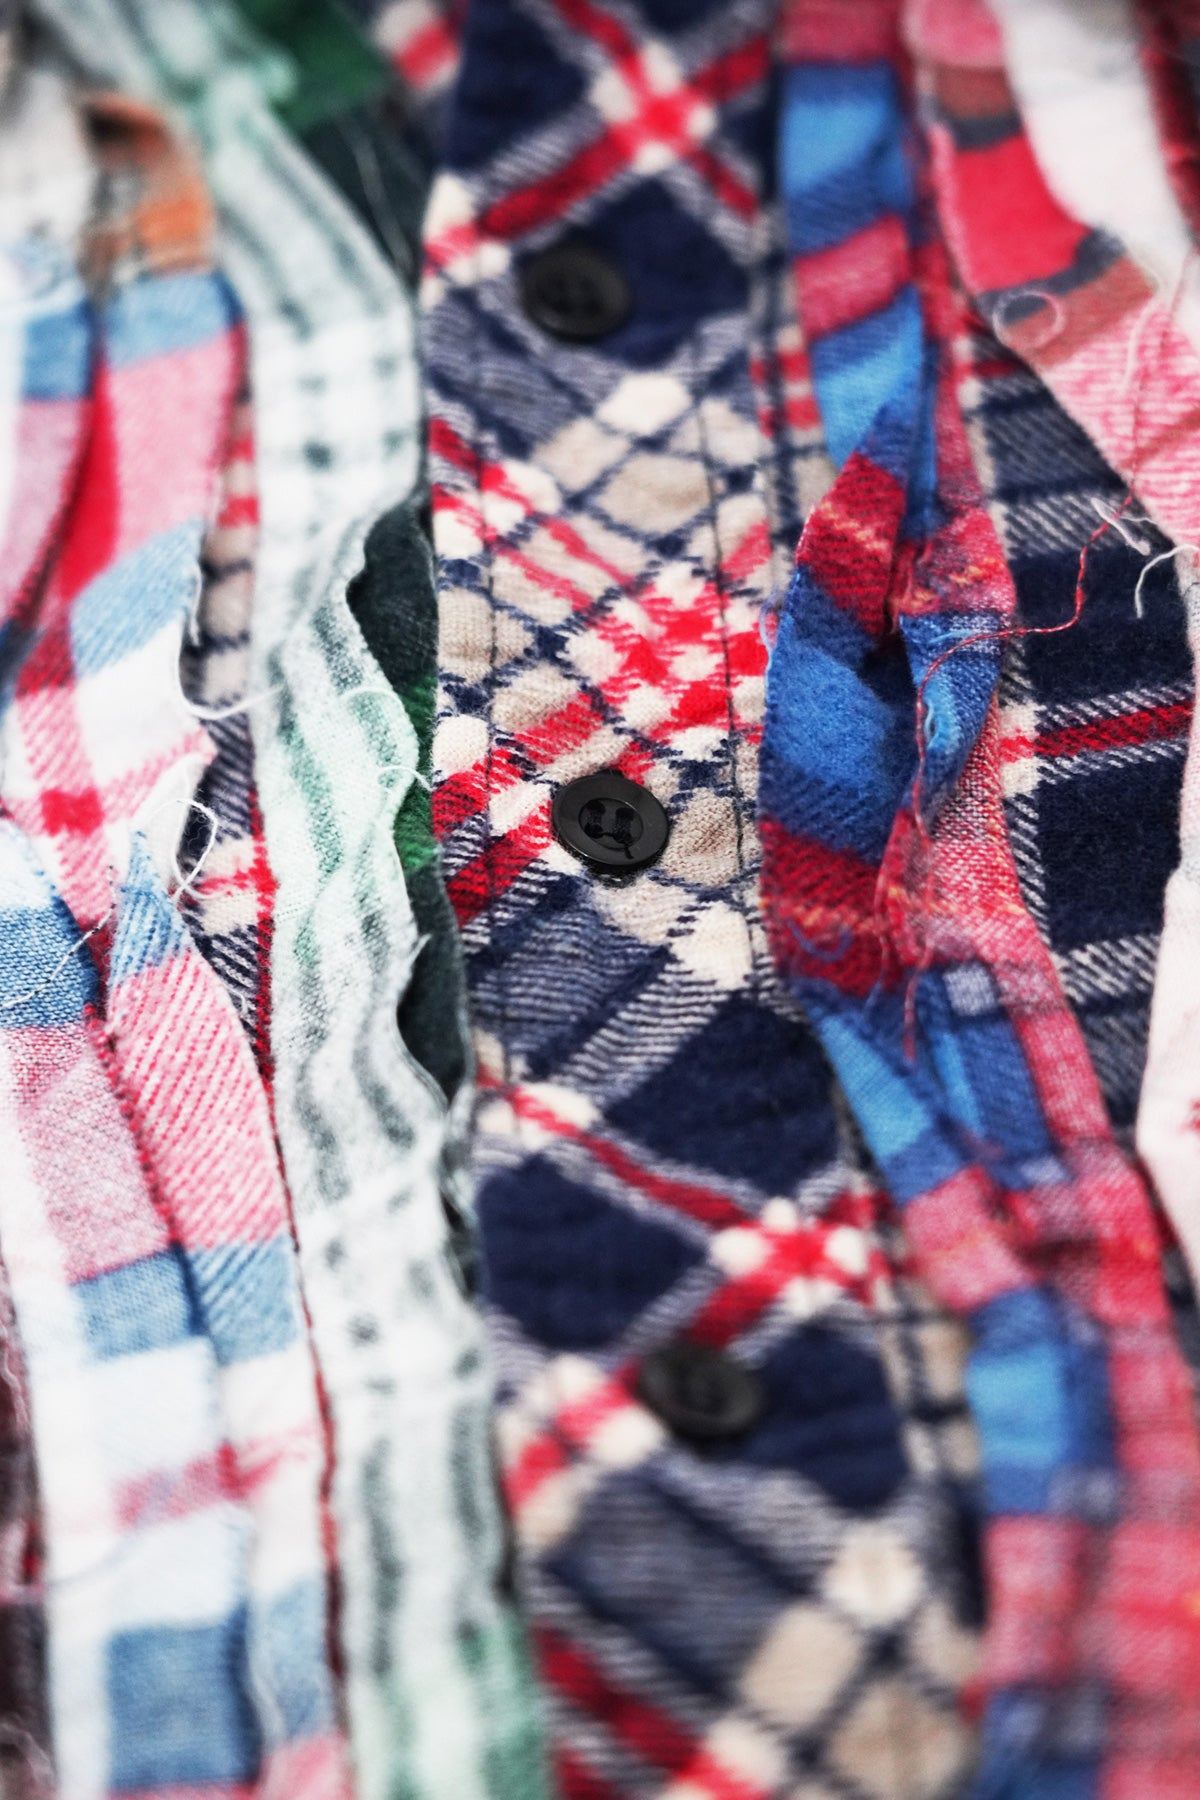 Needles - Ribbon Flannel Shirt - Assorted #7 - Medium - Canoe Club